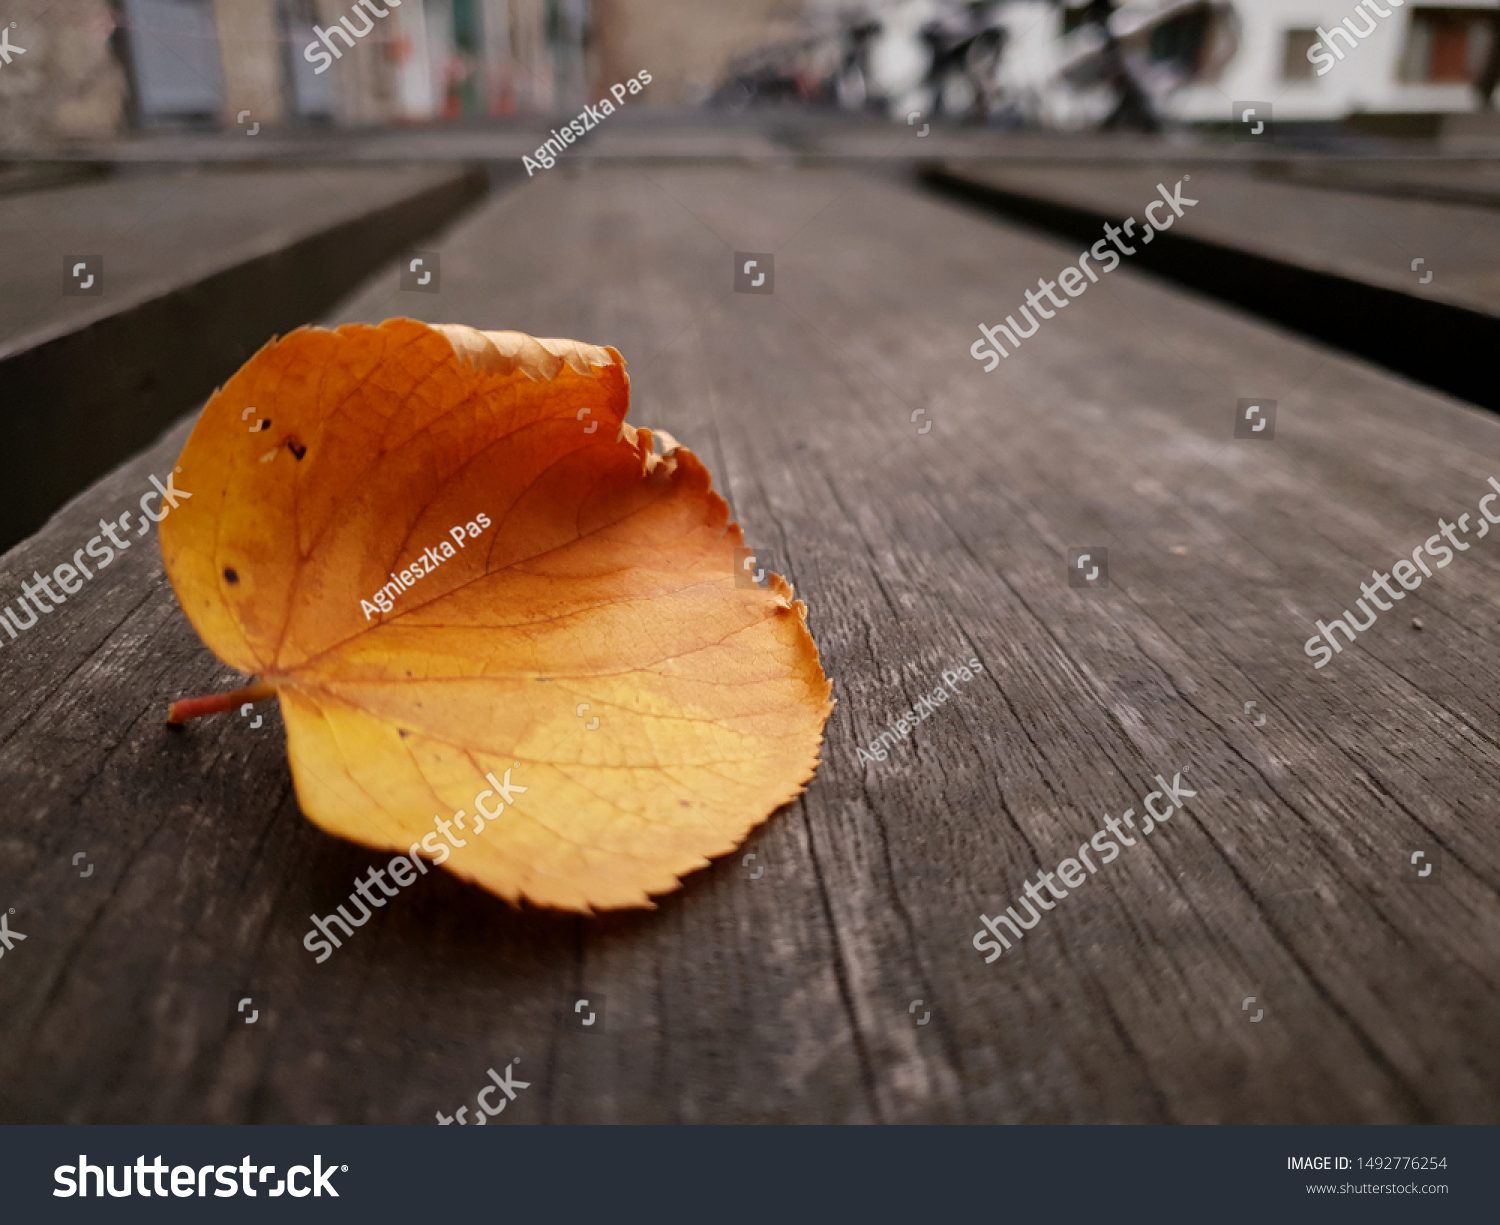 A close-up of orange leaf on wooden surface with a blur background